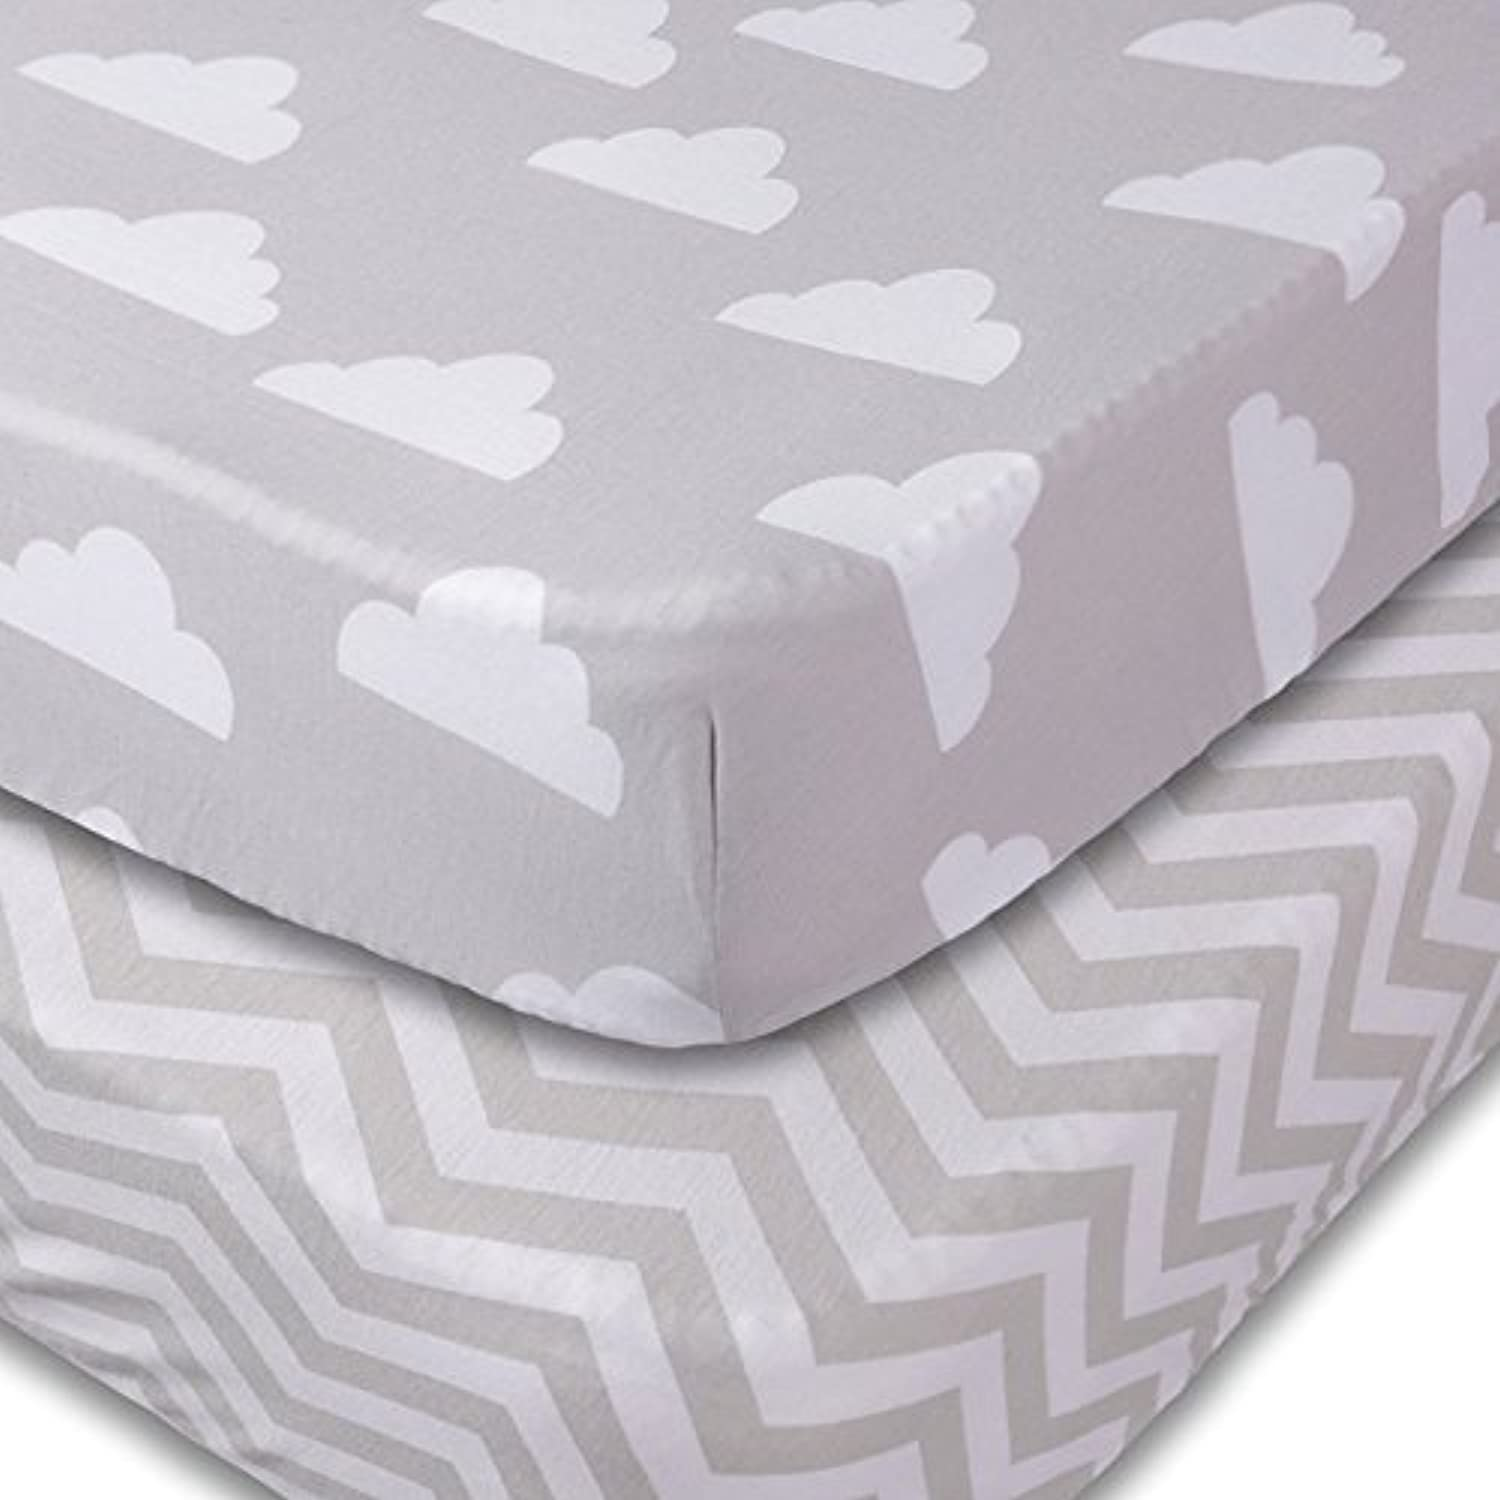 Crib Sheets 2 Pack Fitted Soft Jersey Cotton Sheet Bedding with Unisex Clouds and Chevron Custom Design Fits Standard Mattress for Babies and Toddlers [並行輸入品]